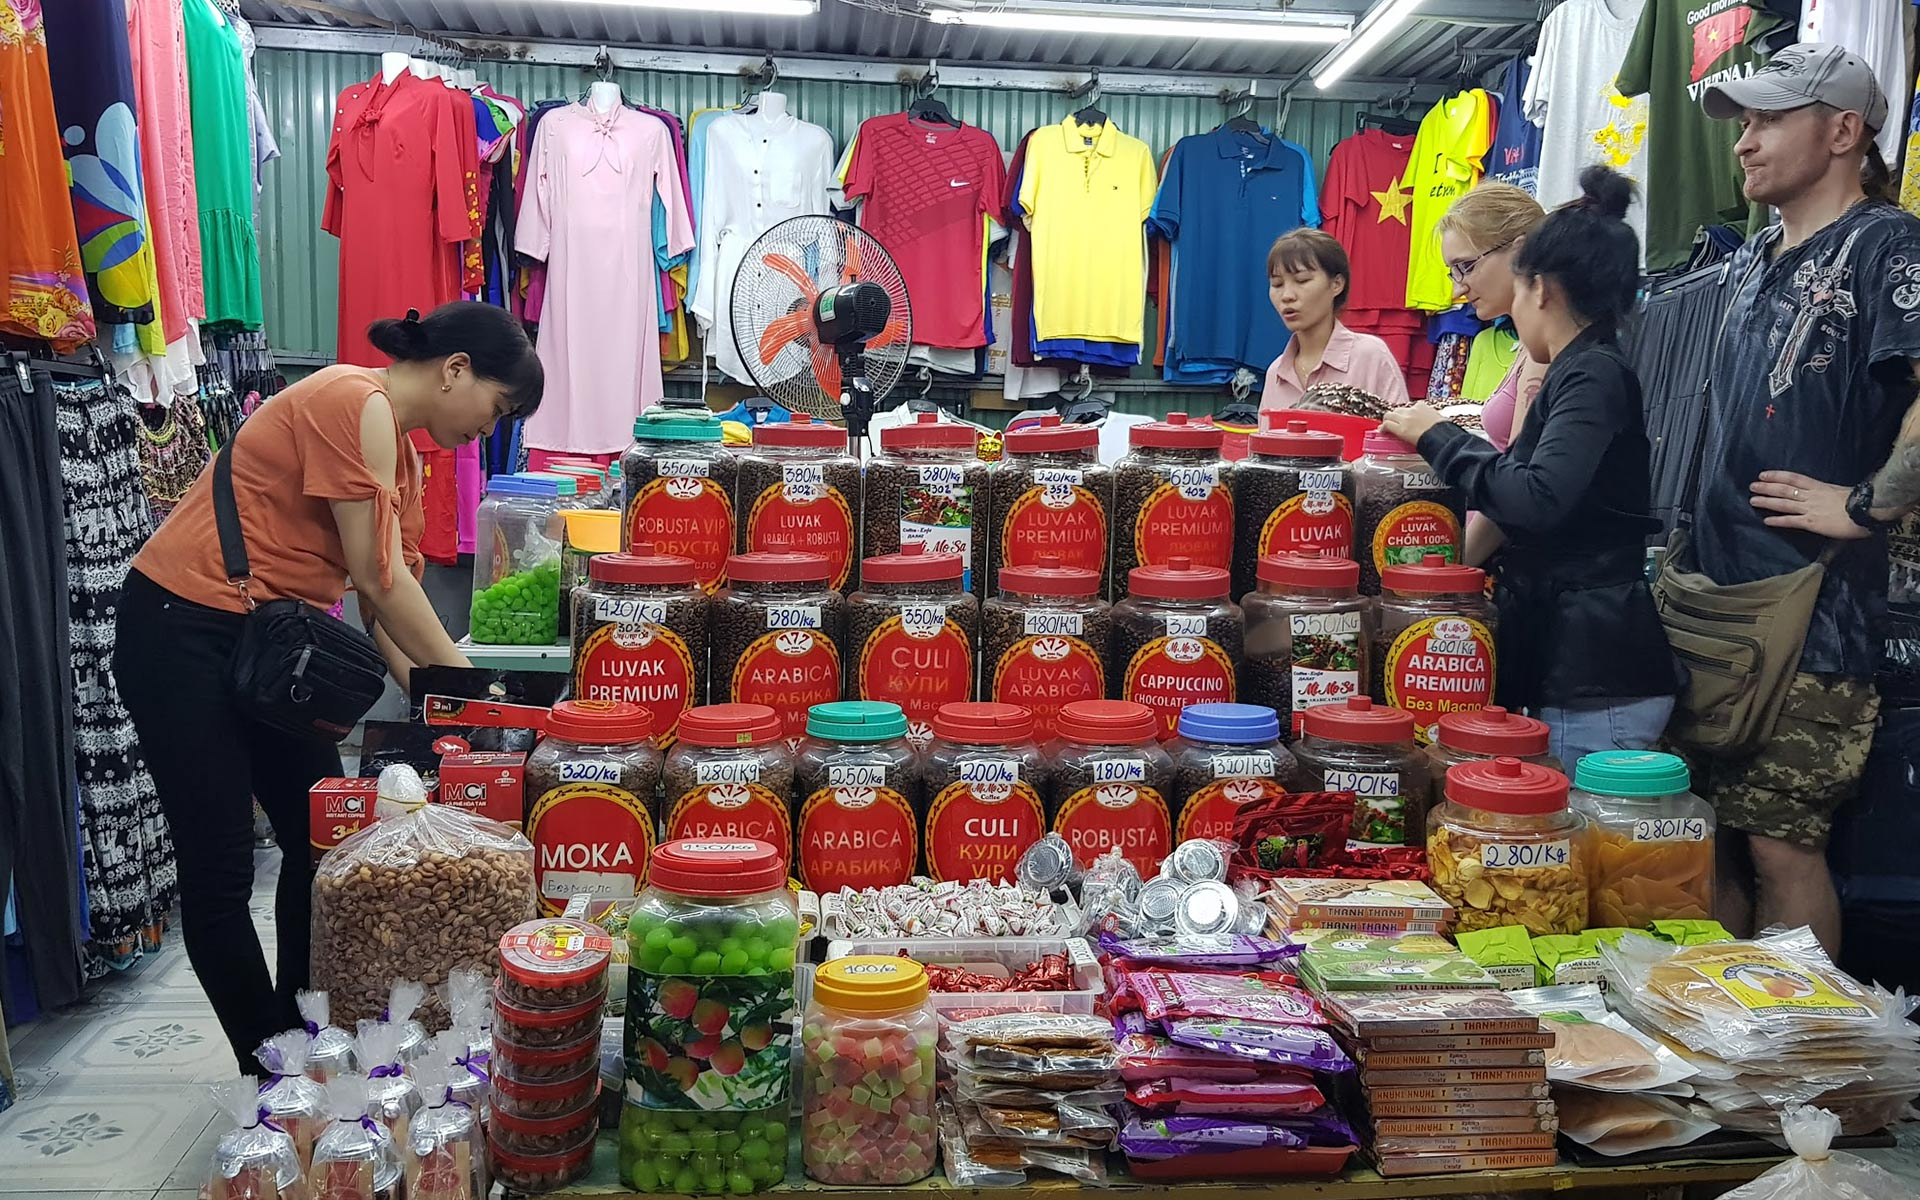 Nha Trang Night Market is opened along Tran Phu Street from 6-7 pm and busy until midnight.